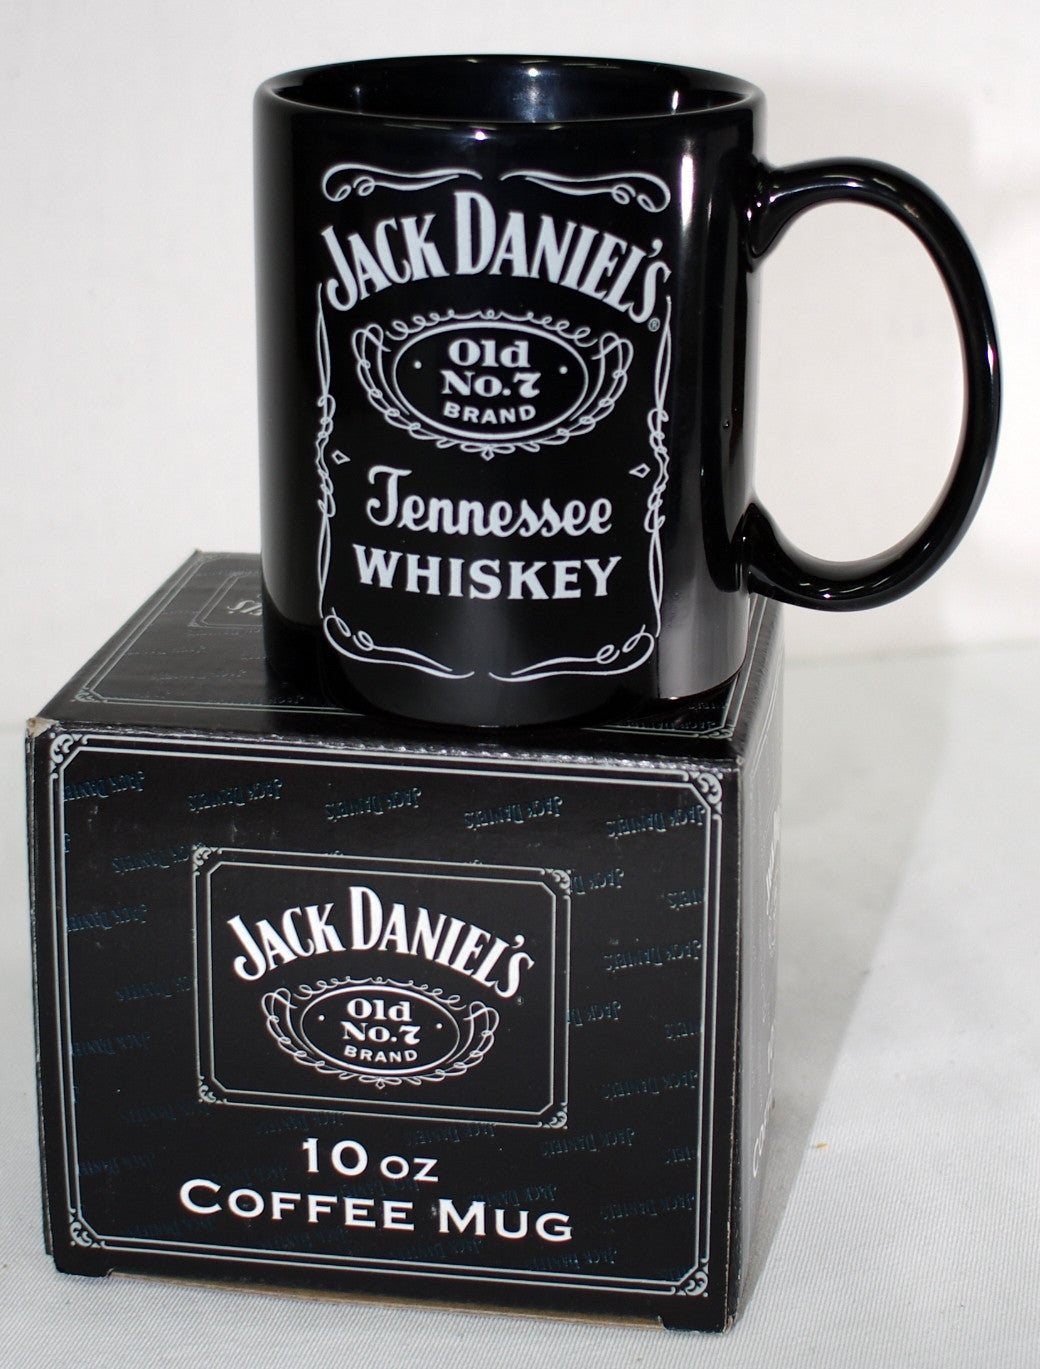 Jack Daniel's 10 OZ Coffee mug.